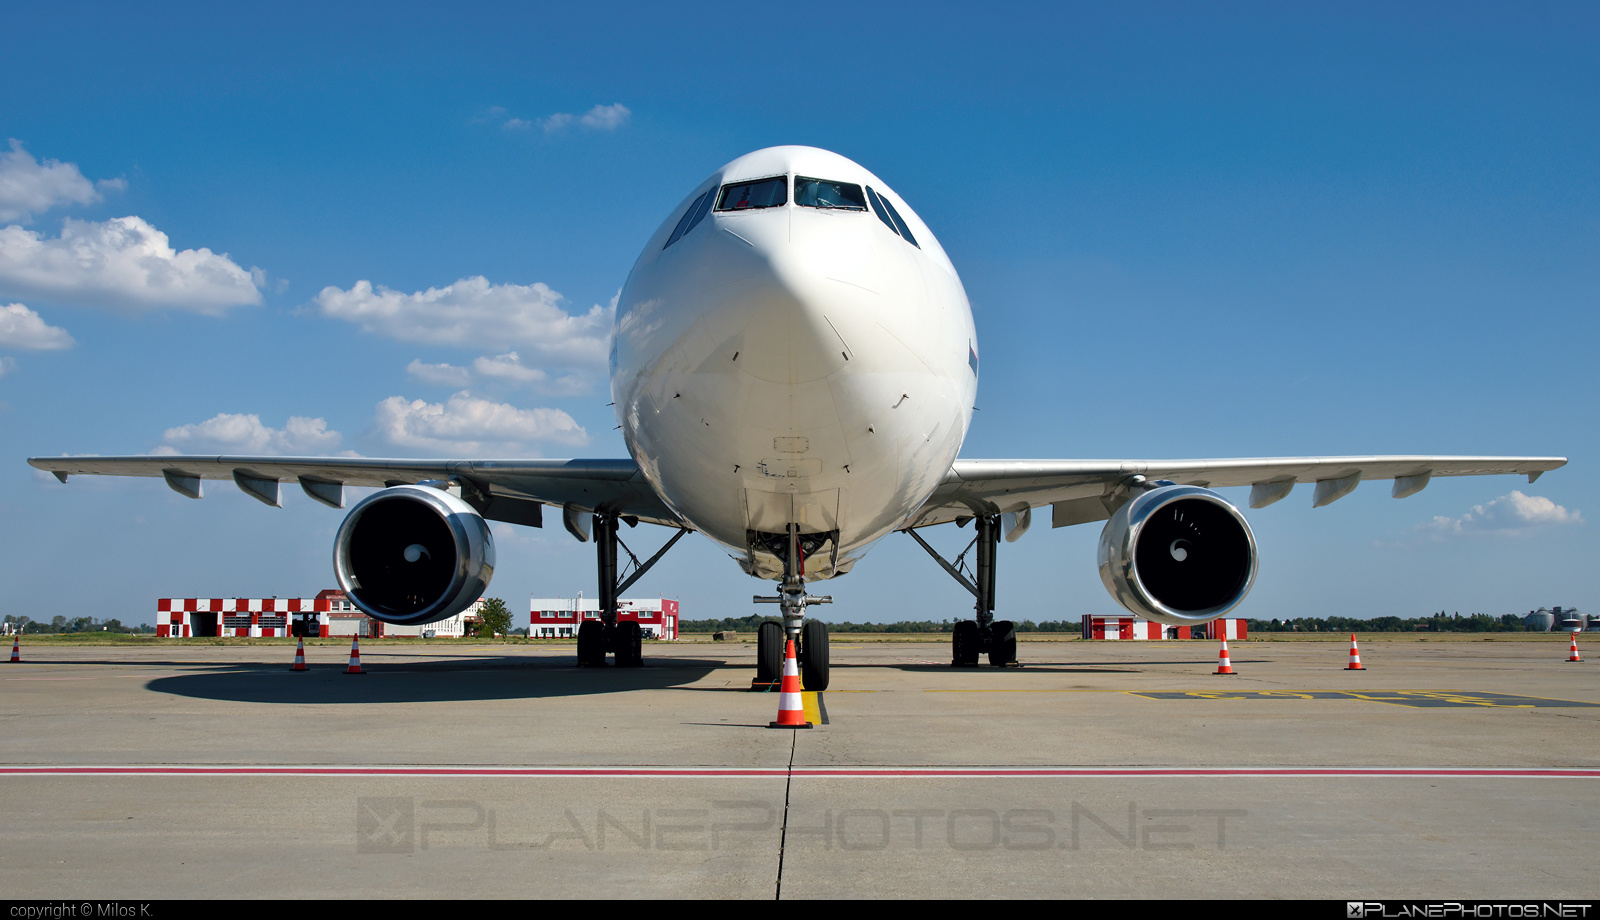 Airbus A300B4-605R - S5-ABW operated by Solinair #a300 #airbus